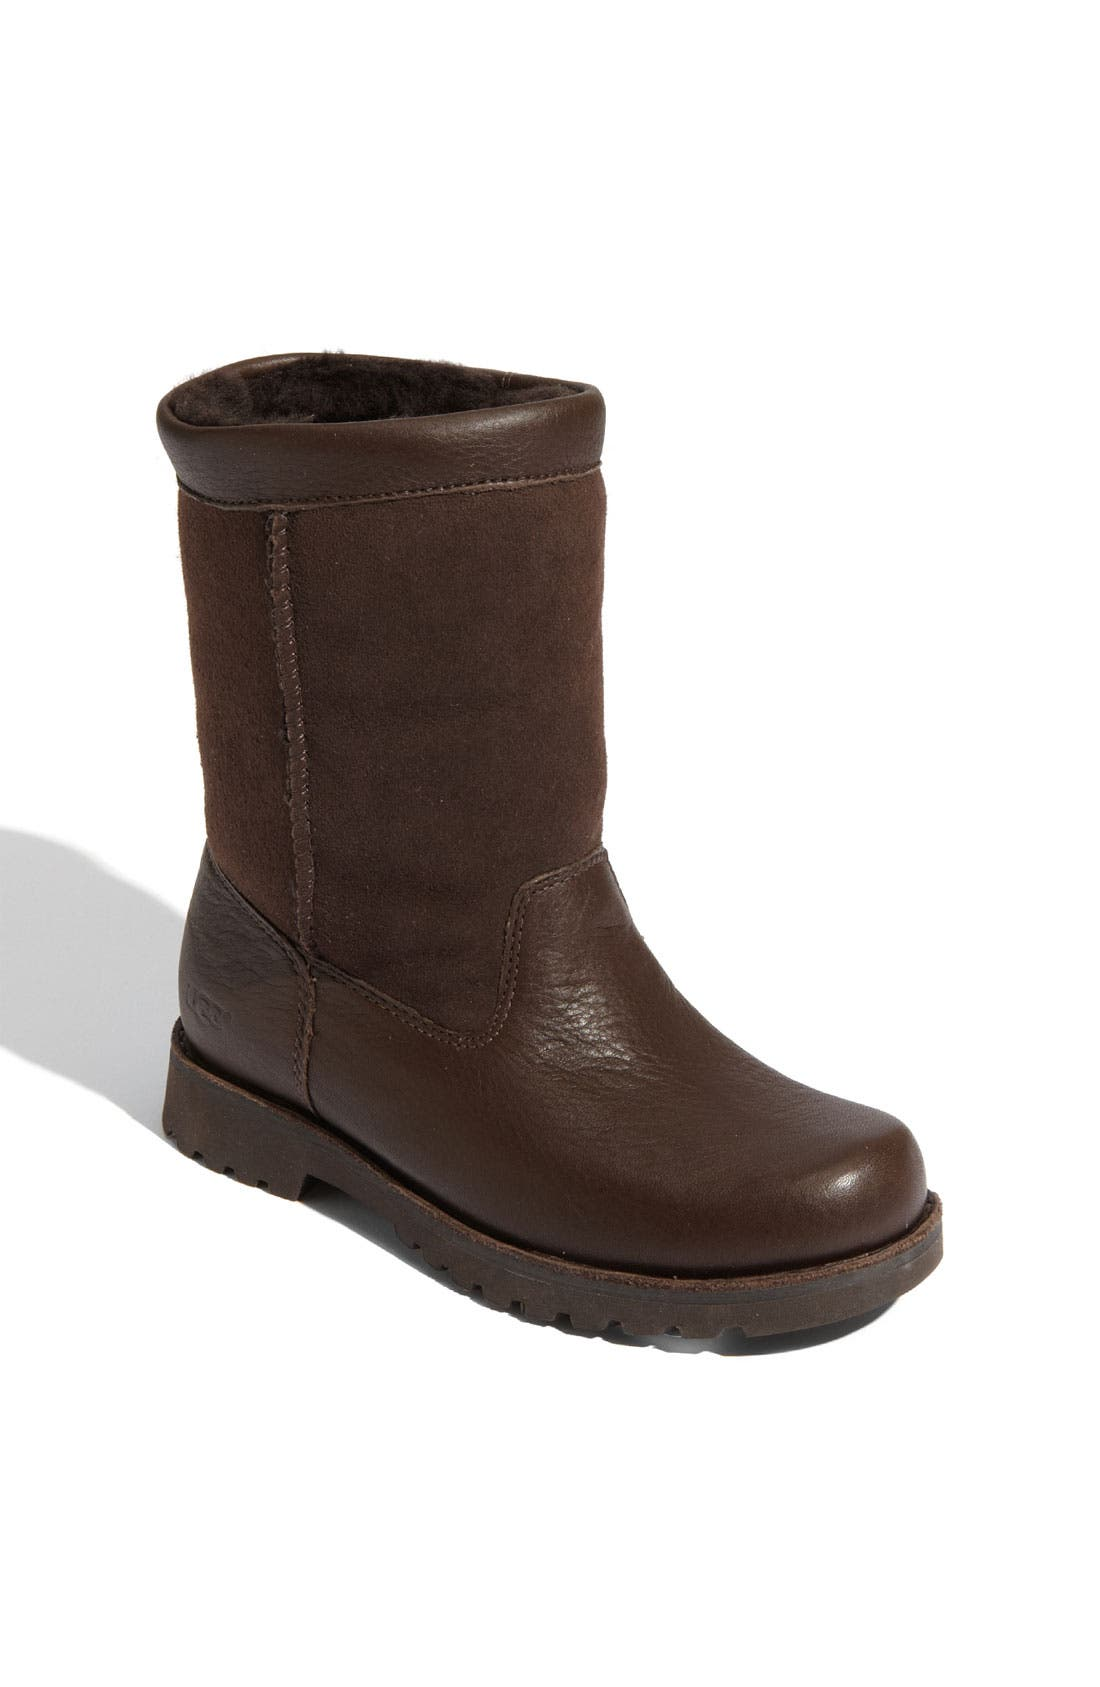 Alternate Image 1 Selected - UGG® 'Riverton' Boot (Toddler, Little Kid & Big Kid)